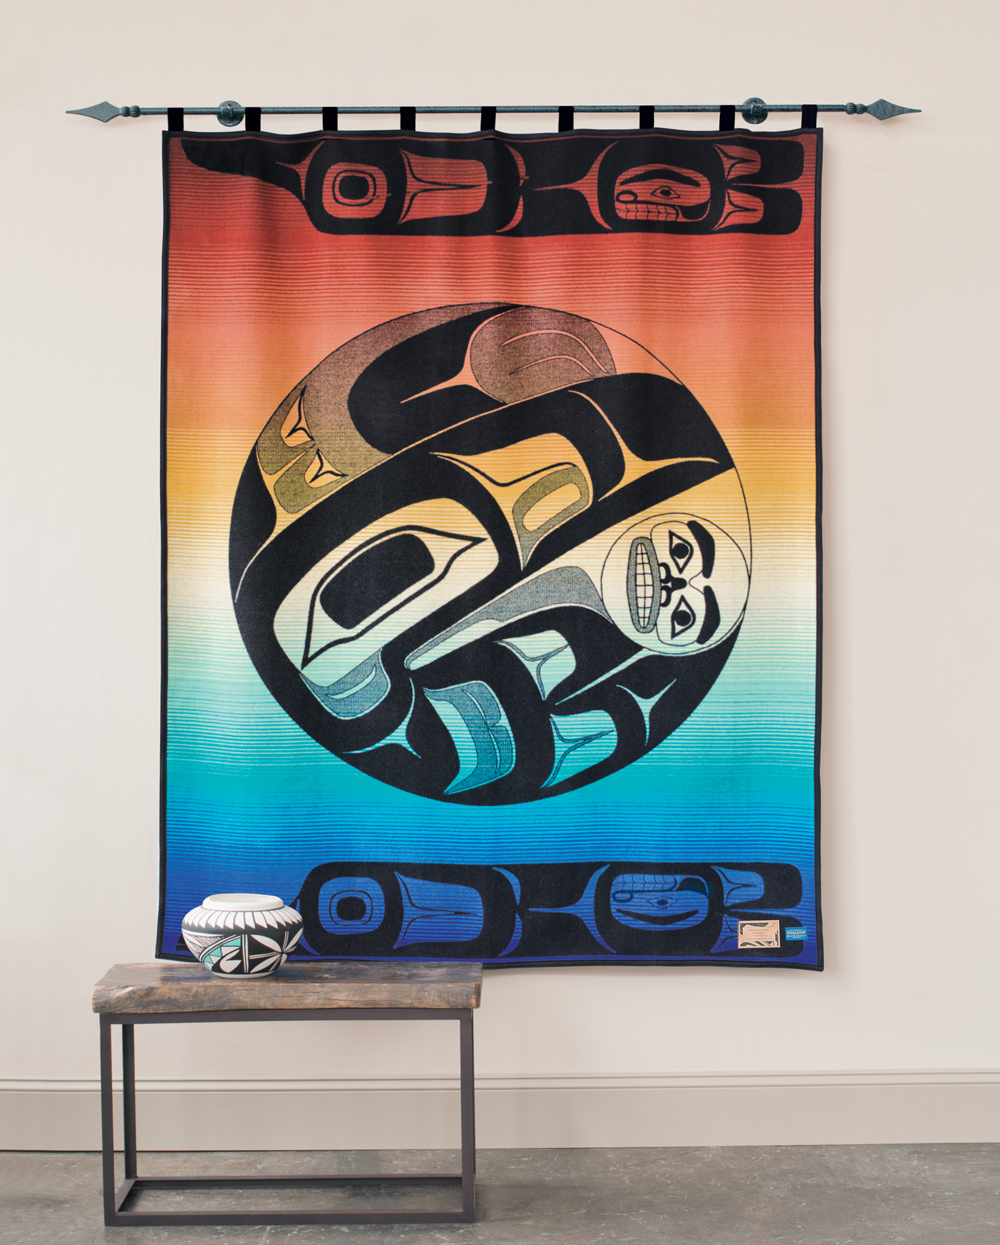 The Pendleton blanket, Raven and the Box of Knowledge, hangs on a wall.